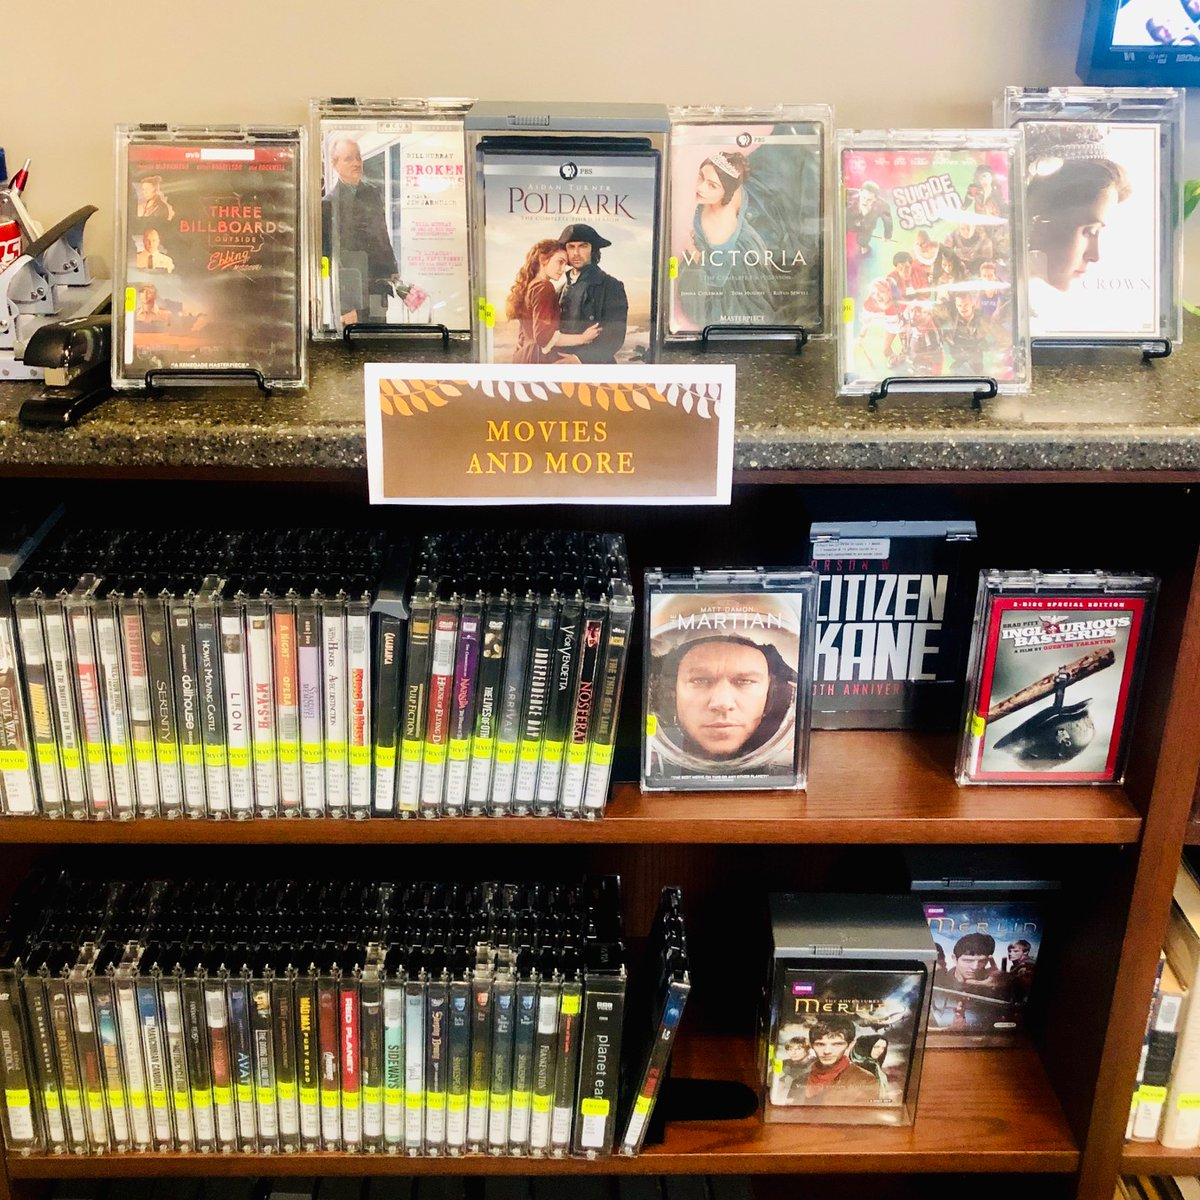 New movies are filling the shelves at RSU Libraries Pryor! Check them out! #newmoview #movielover #classicfilms #cinemapic.twitter.com/fUqP7ooVqo